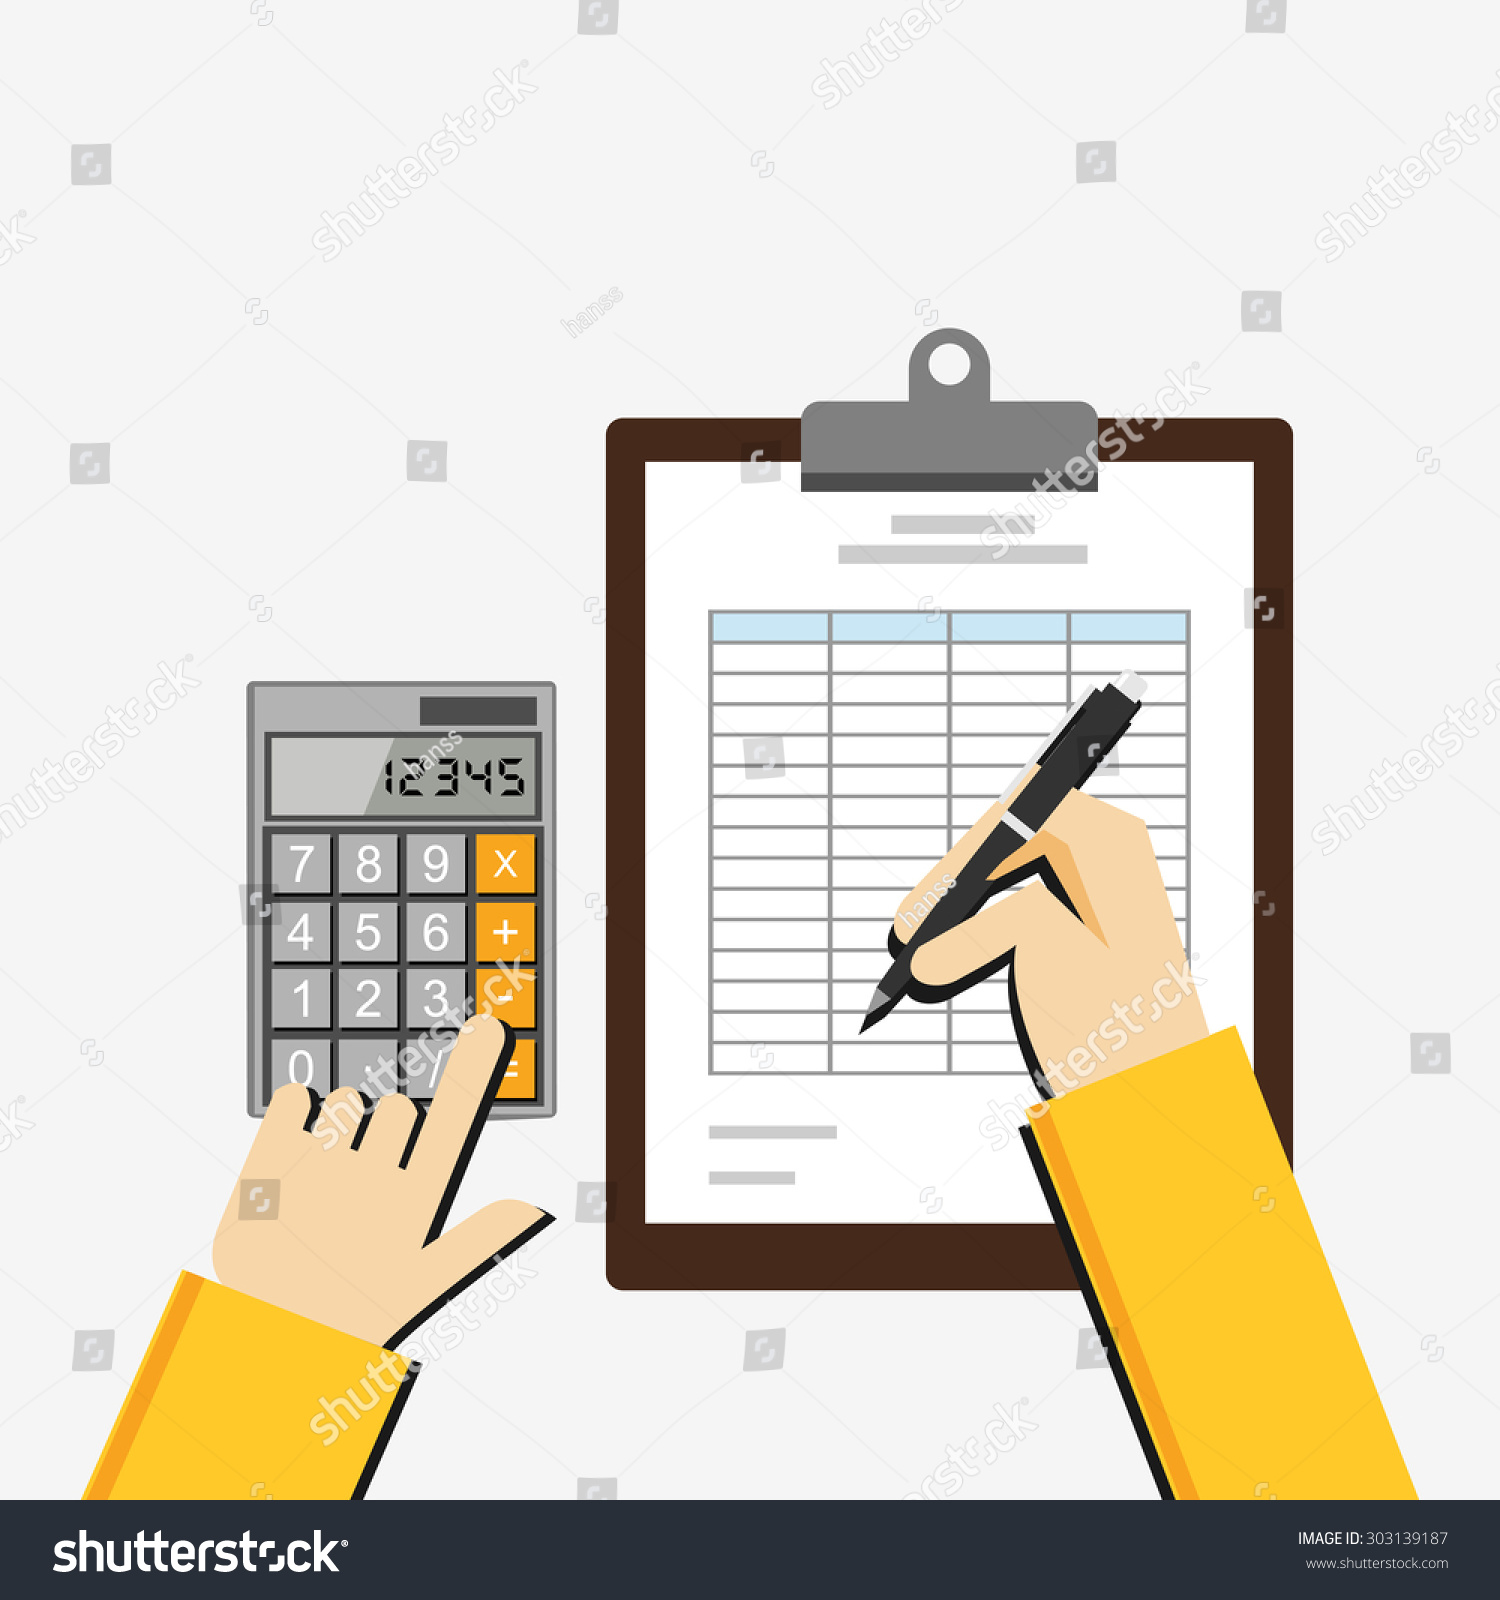 Flat Illustration Tax Document Spreadsheet Budget Stock Vector ...